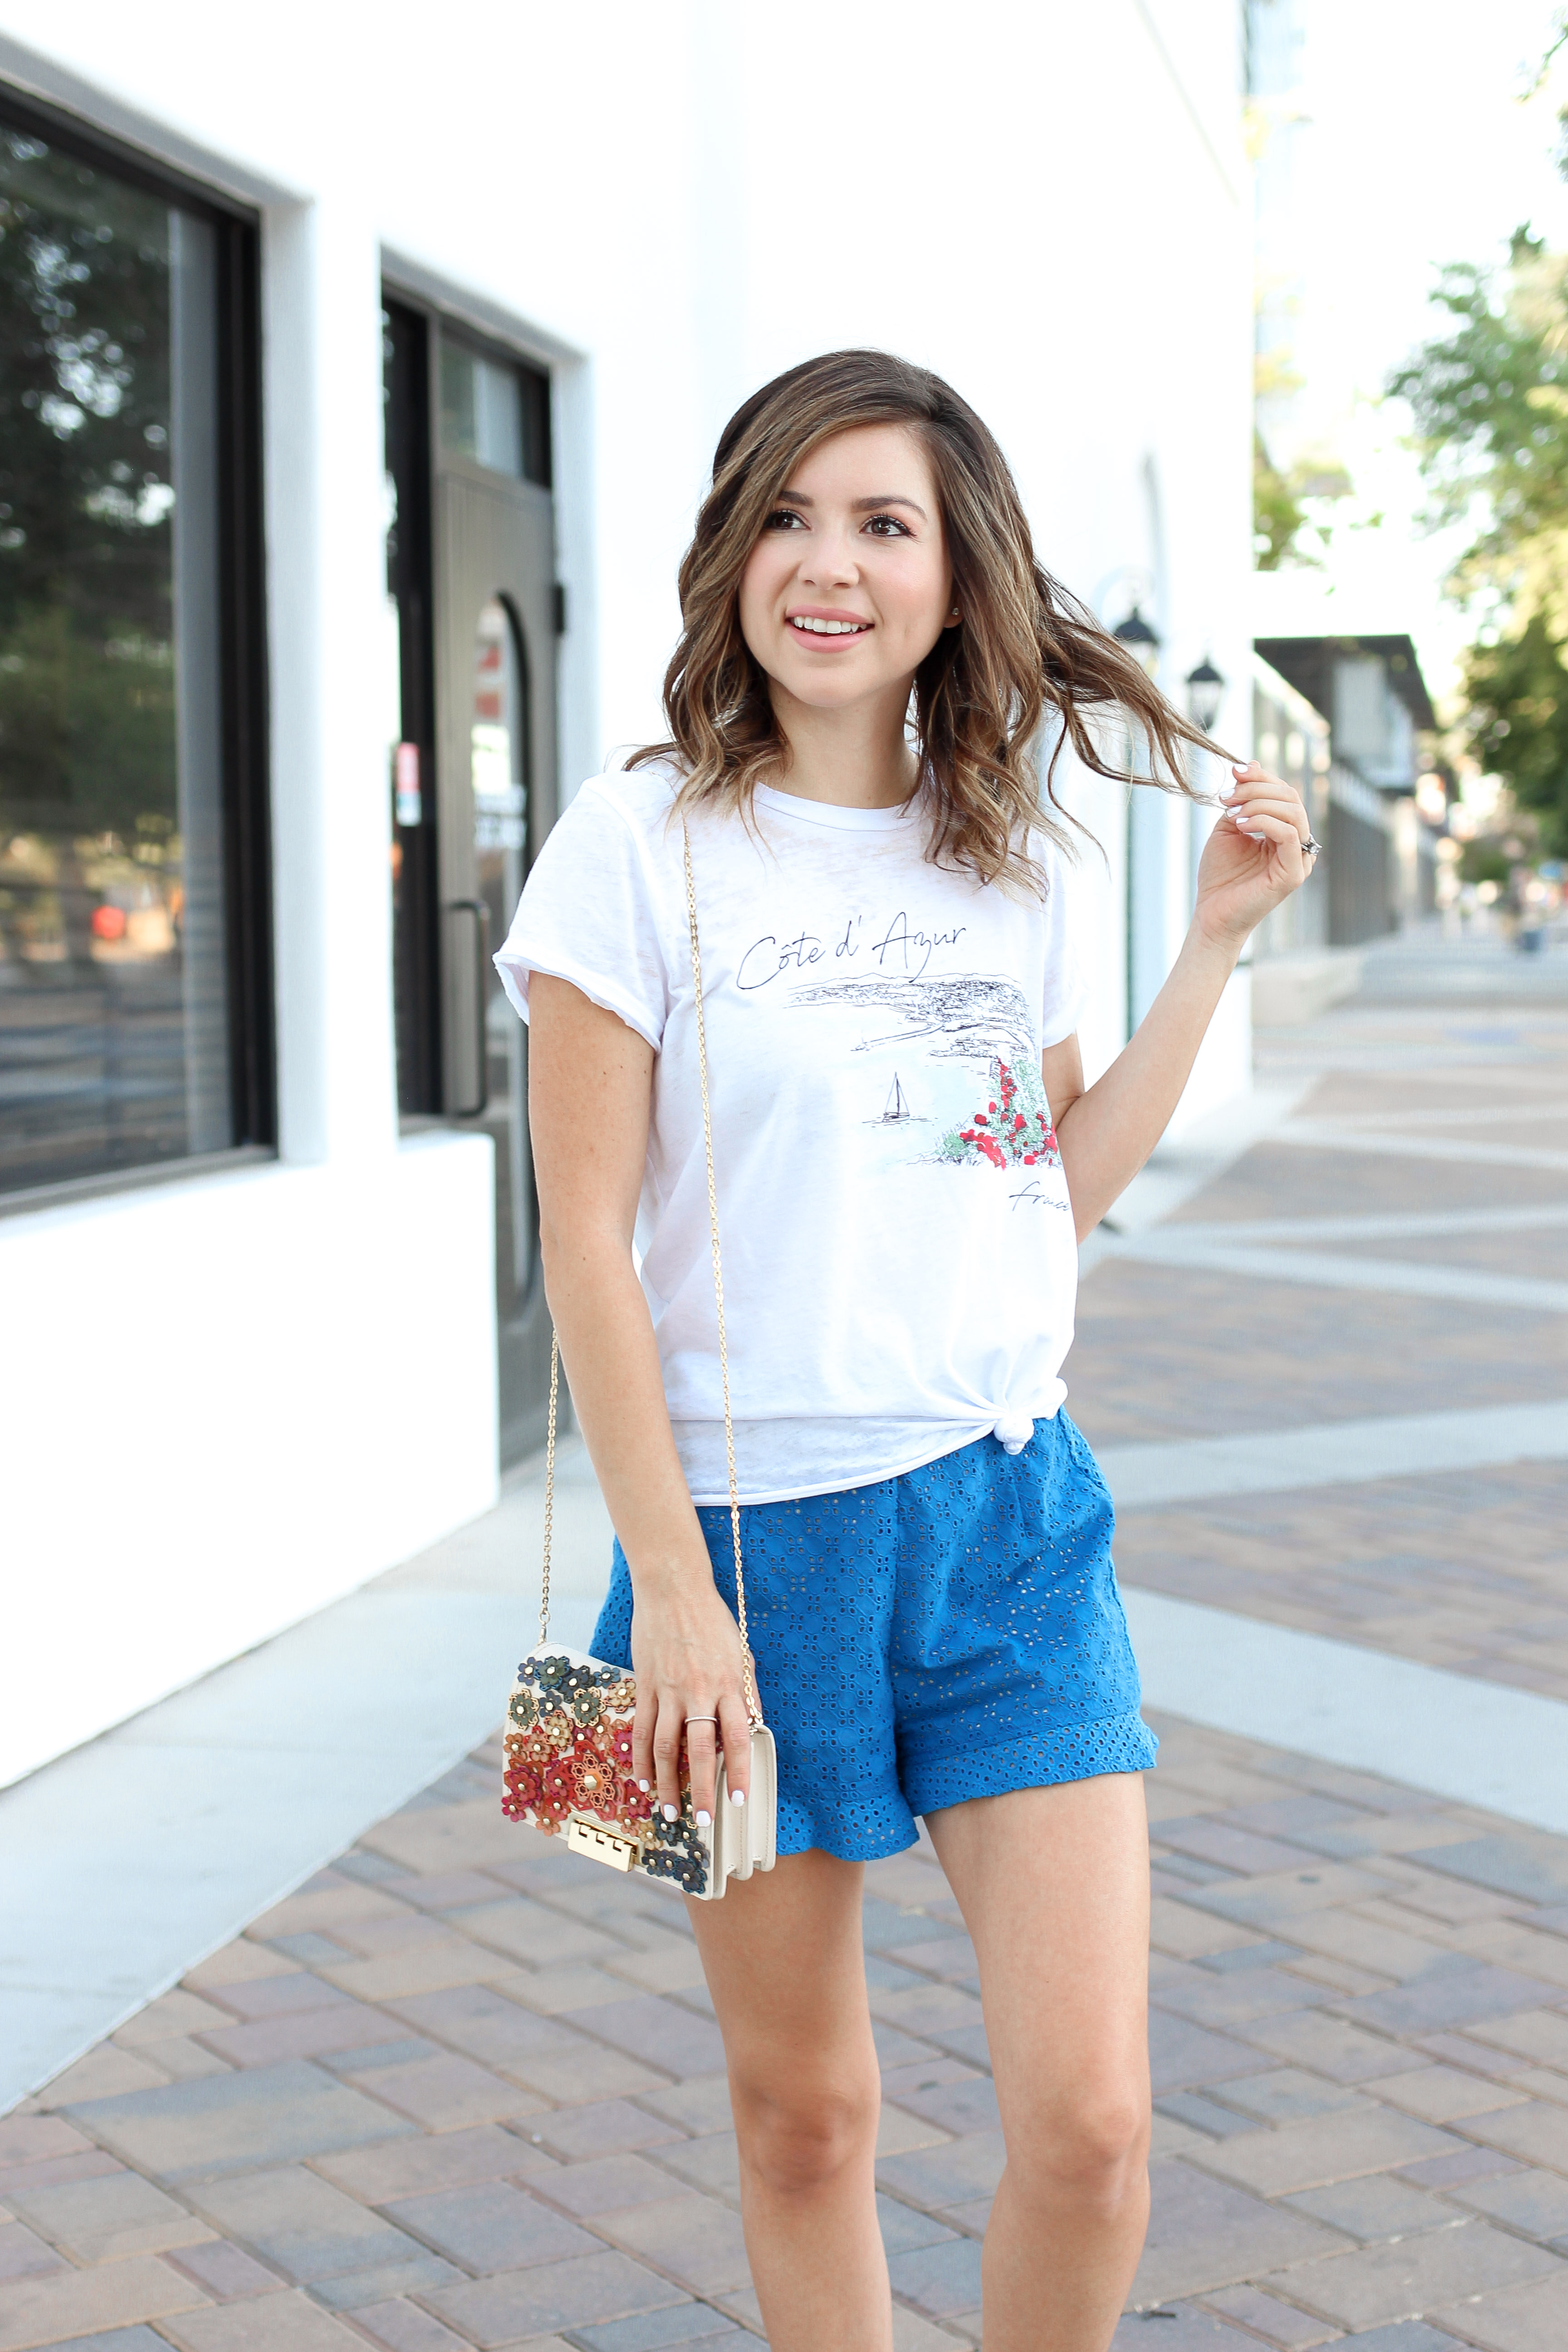 Simply Sutter Summer Style Ruffle Shorts Tee Shirt Outfit 5732